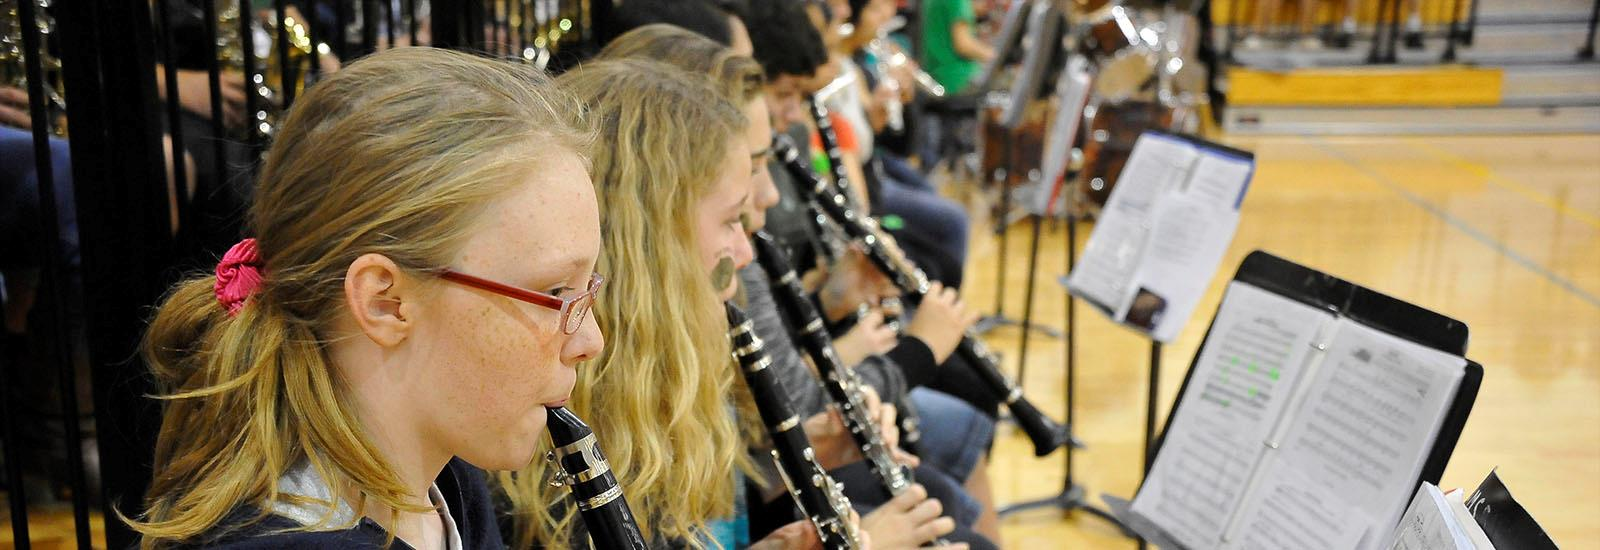 Our band gives students the chance to develop and express talents.